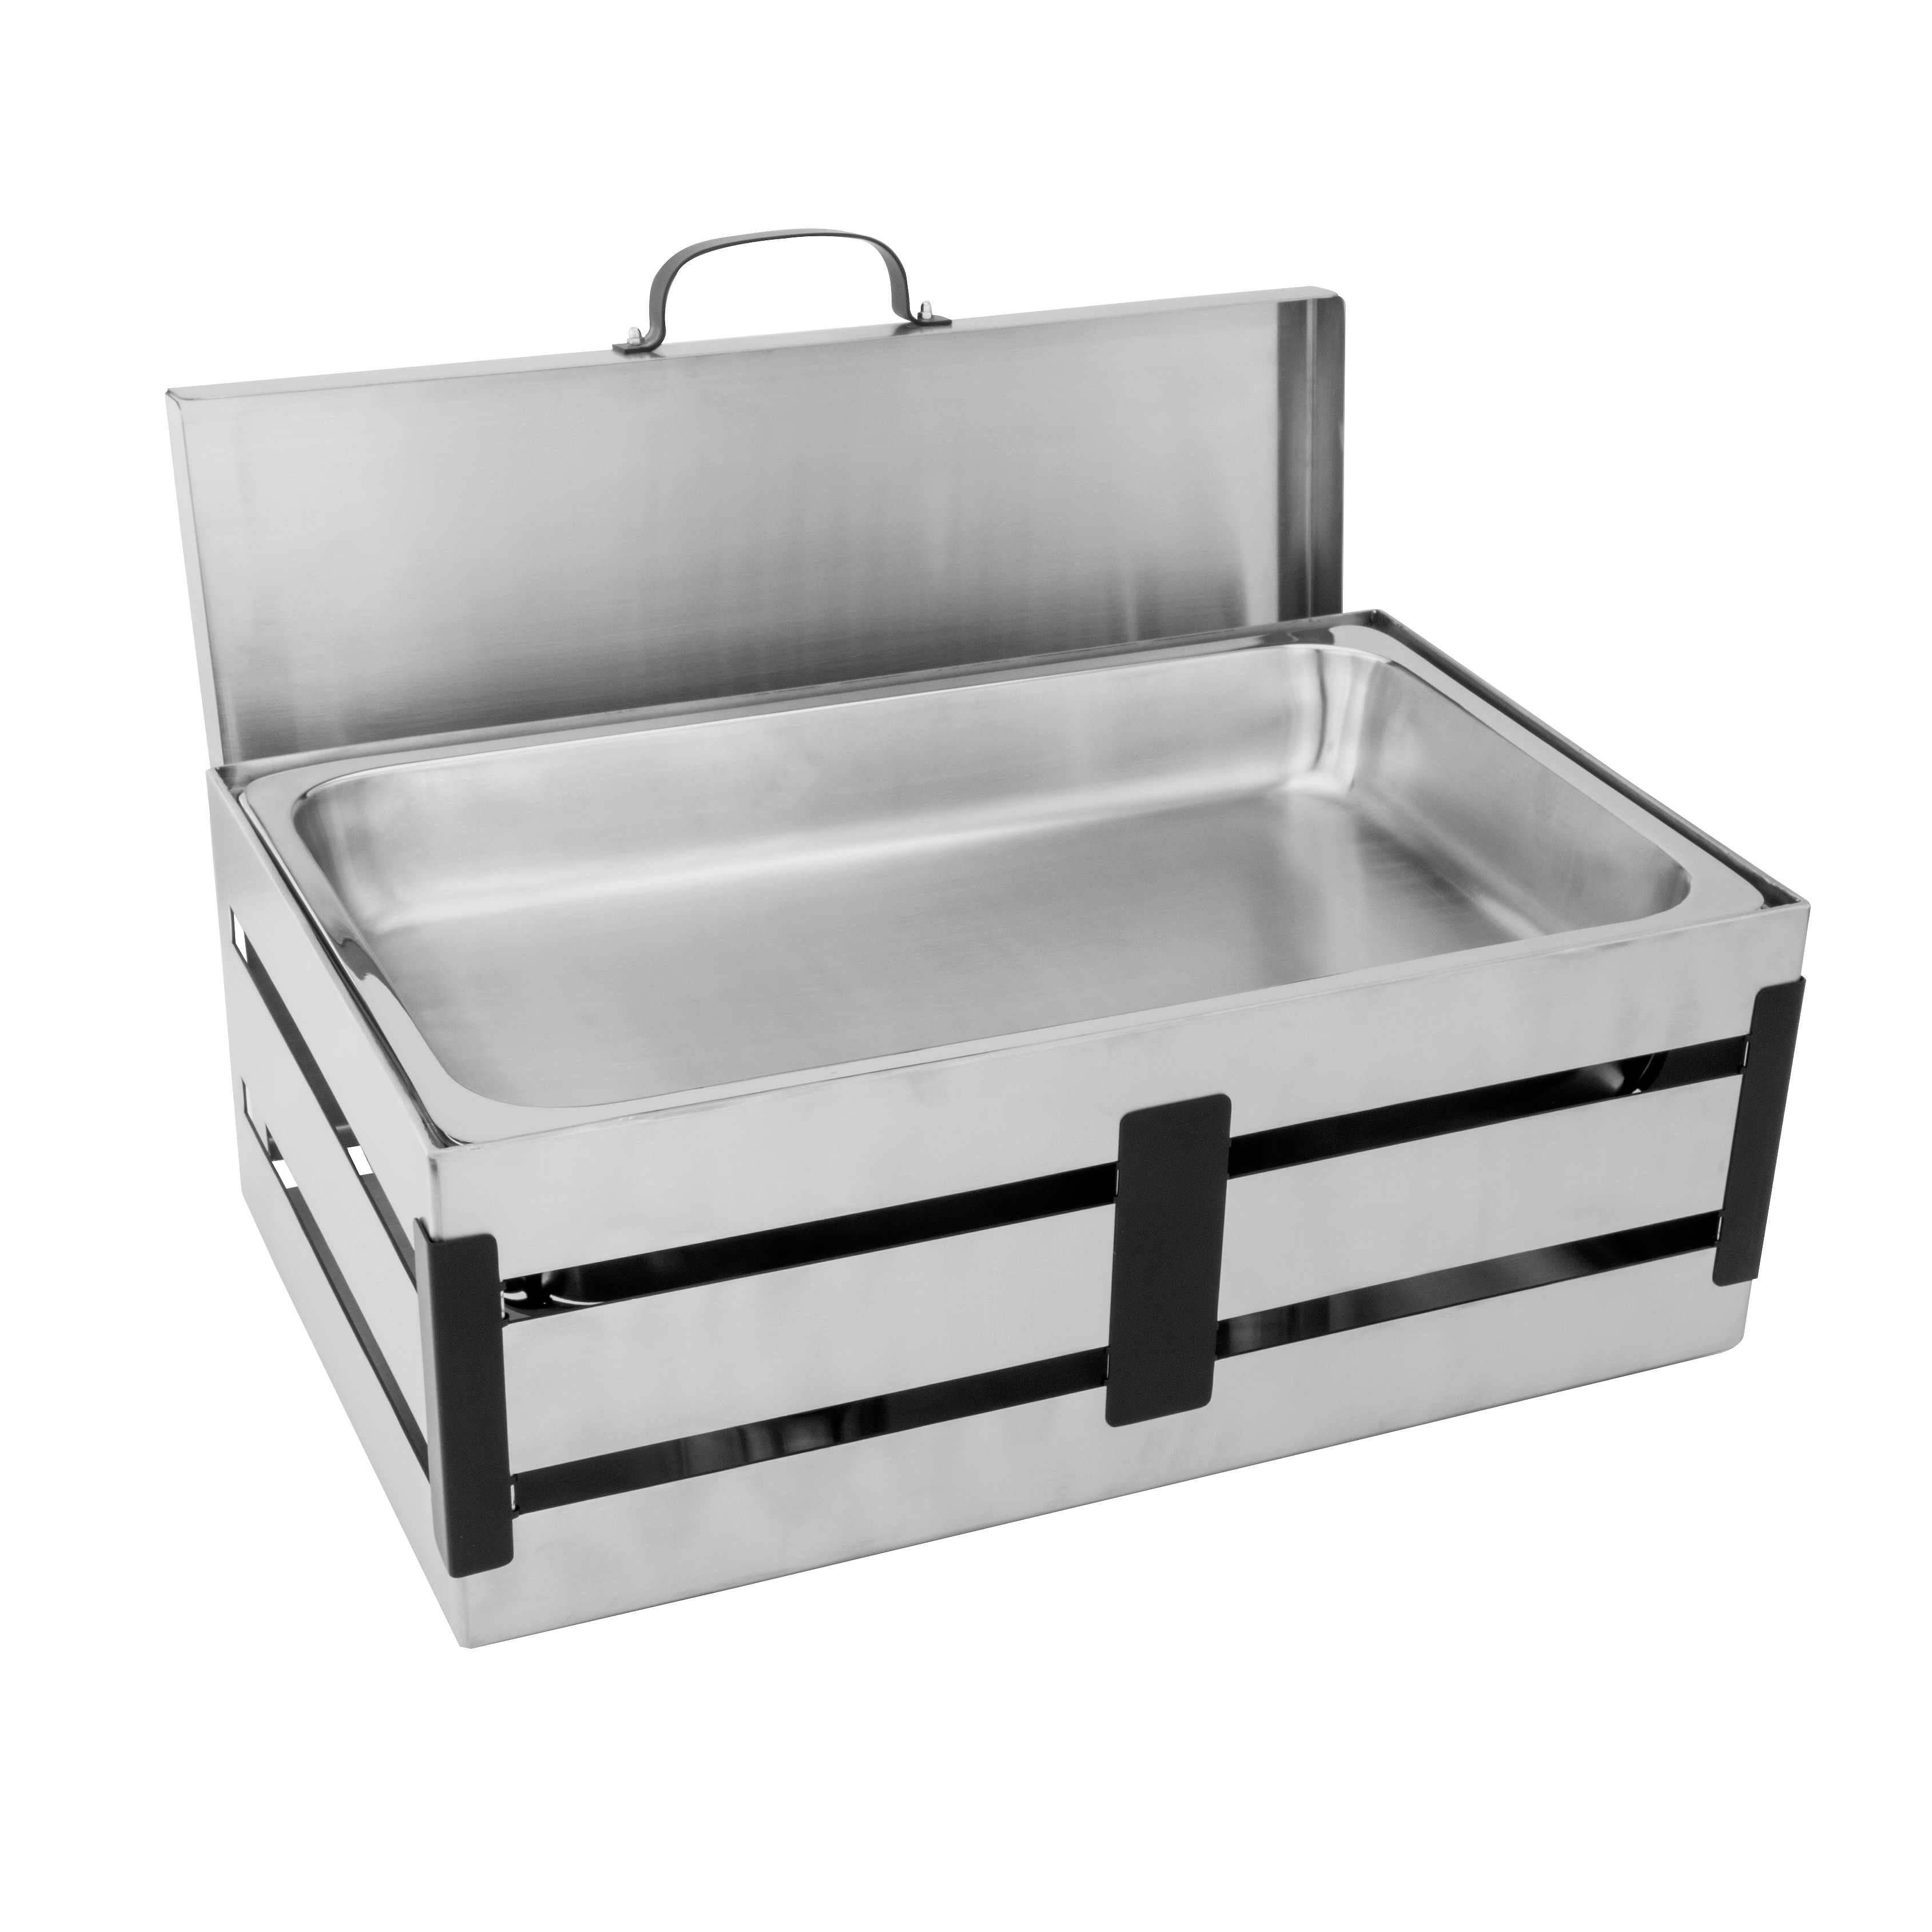 Walco Stainless CR8B chafing dish